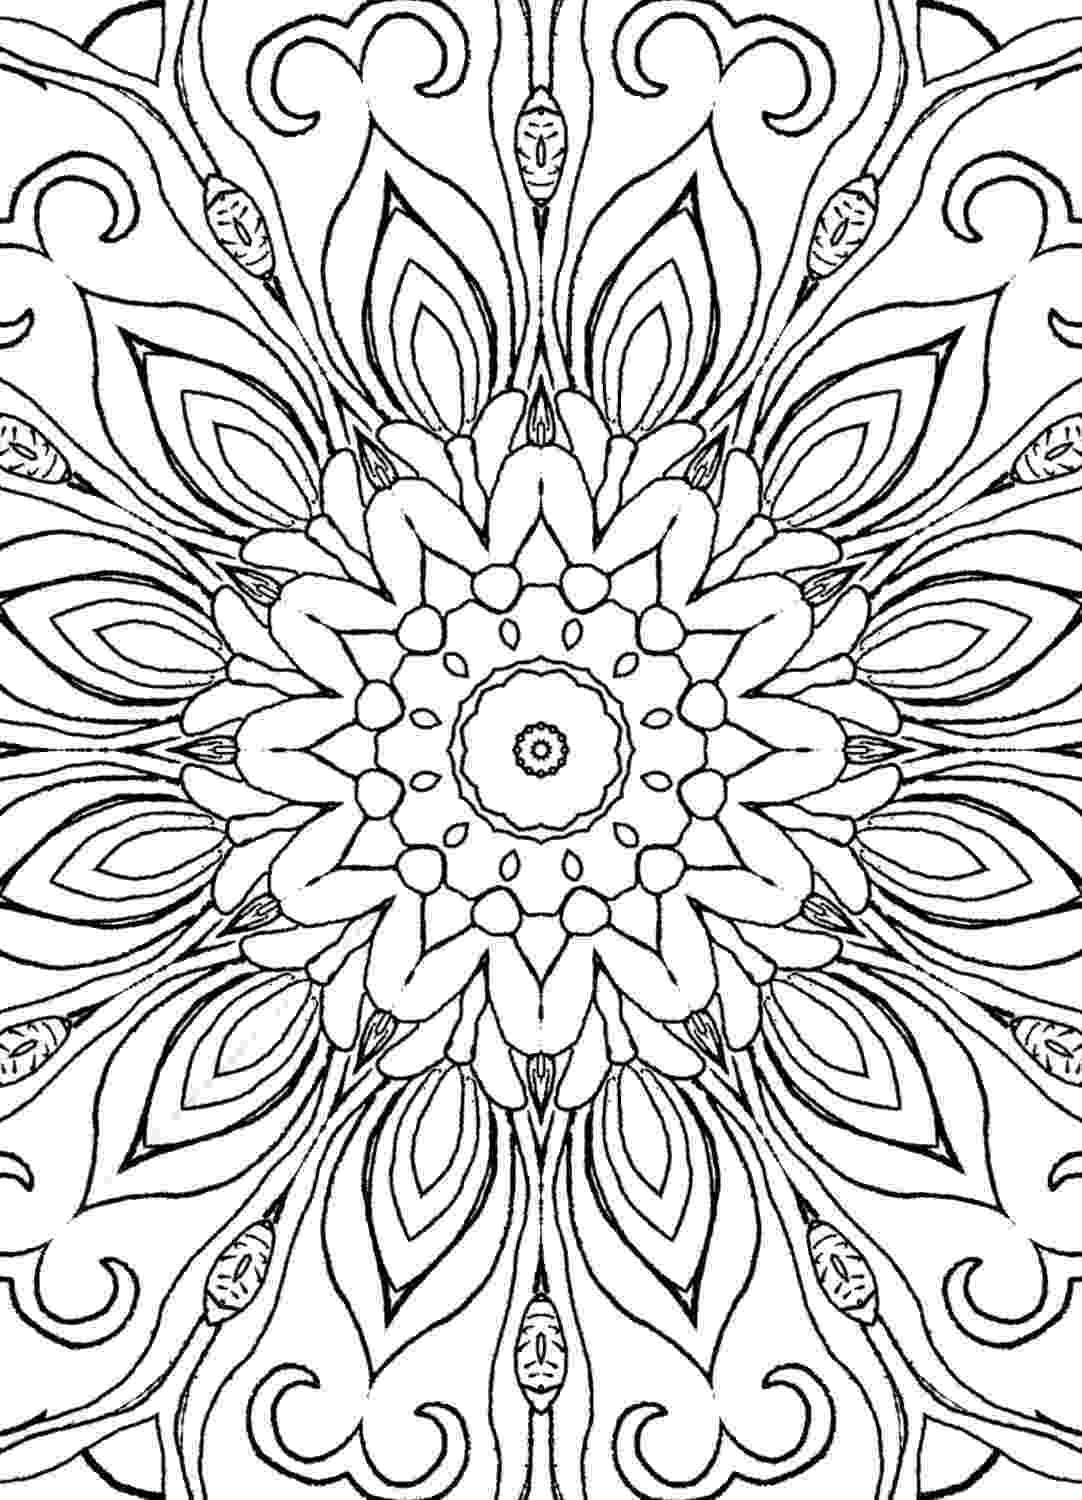 patterns to colour for adults cindy wilde 6039s patern colouring page doodle art for adults colour to patterns